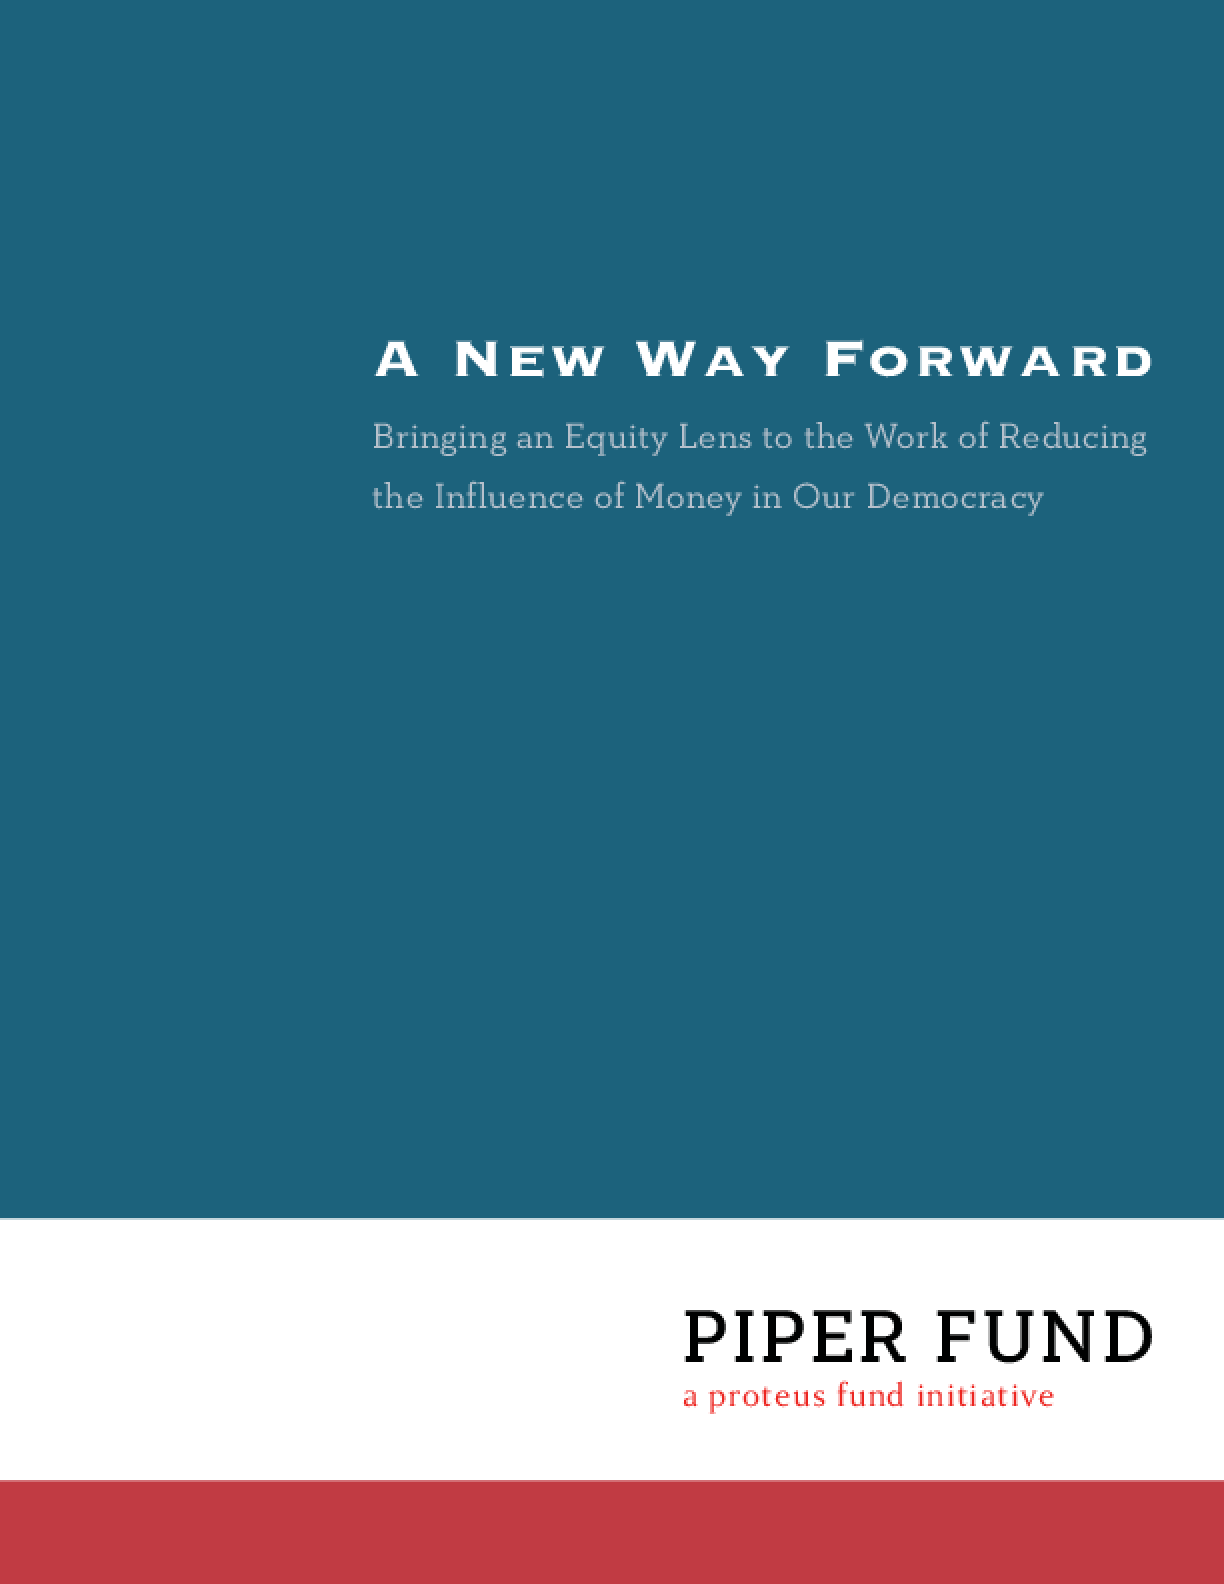 New Way Forward: Bringing an Equity Lens to the Work of Reducing the Influence of Money in Our Democracy, A